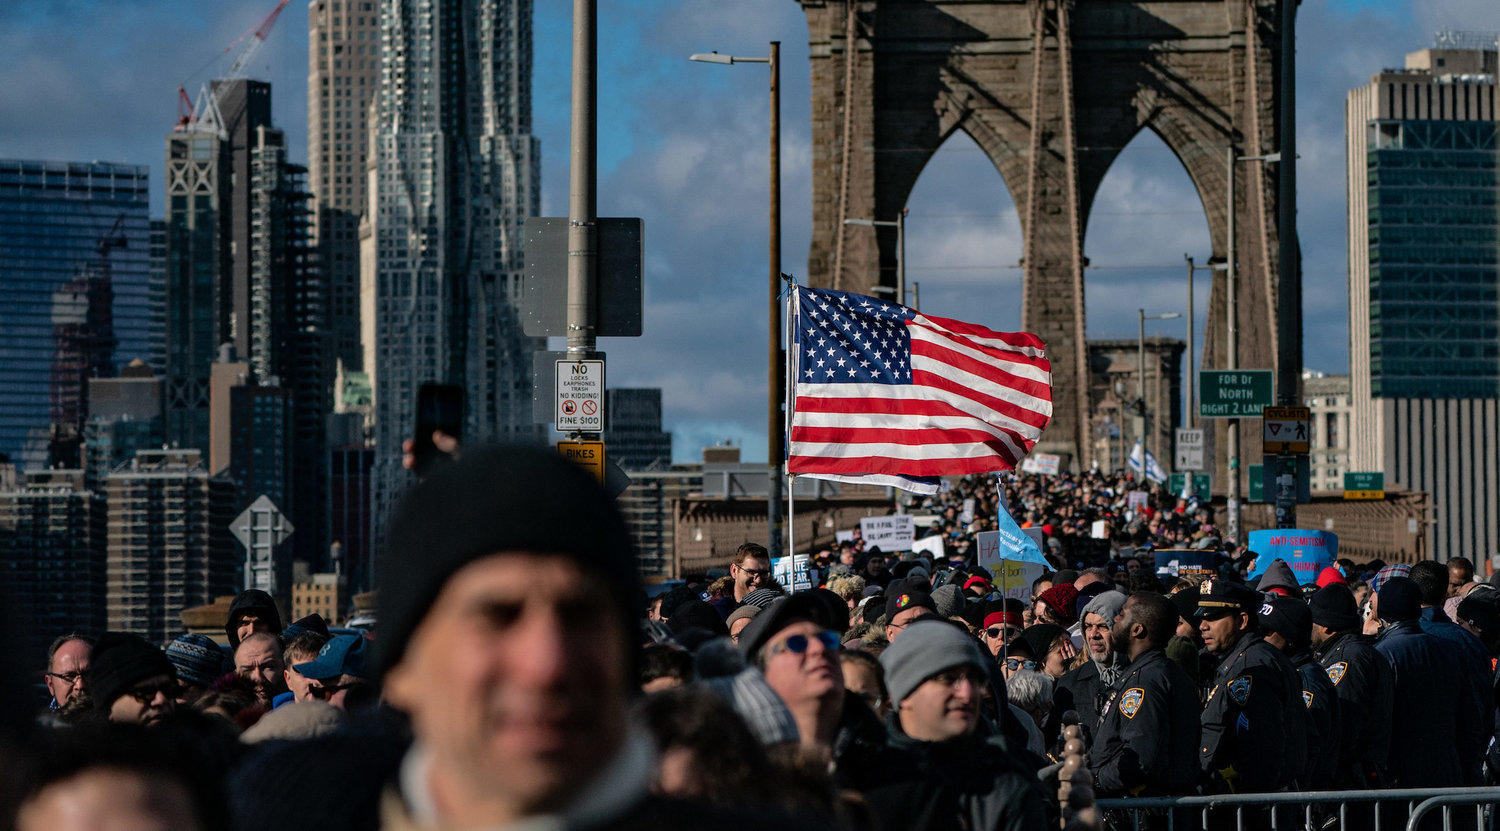 NEW YORK, NY - JANUARY 05: People participate in a Jewish solidarity march across the Brooklyn Bridge on January 5, 2020 in New York City. The march was held in response to a recent rise in anti-Semitic crimes in the greater New York metropolitan area. (Photo by Jeenah Moon/Getty Images)